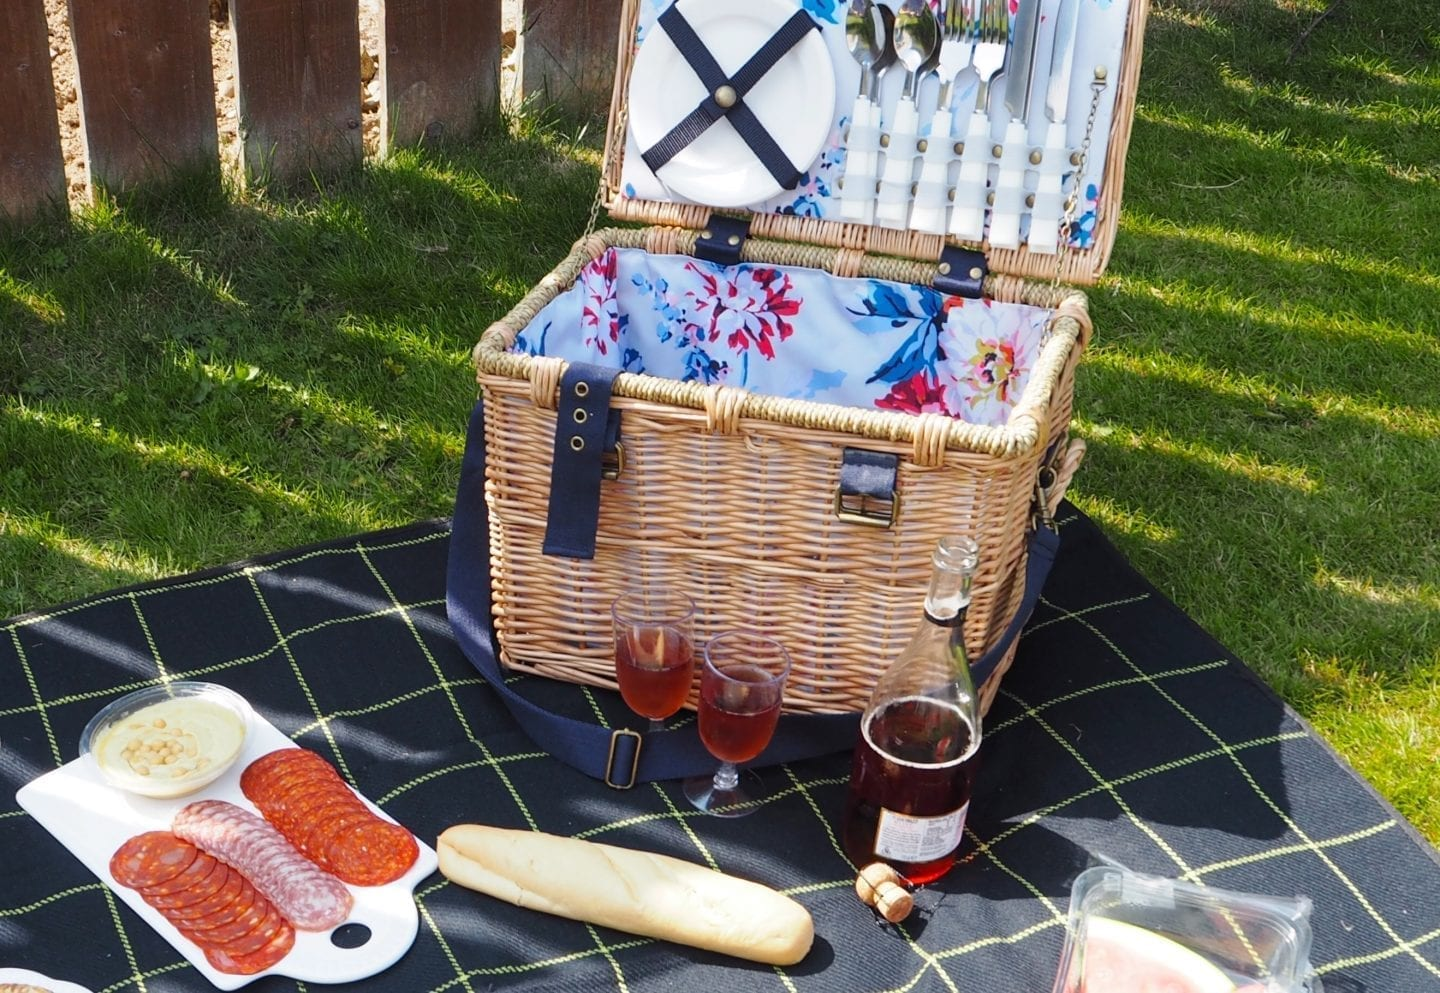 10 Summer Picnic Essentials What must haves you need to bring with you on picnics this summer